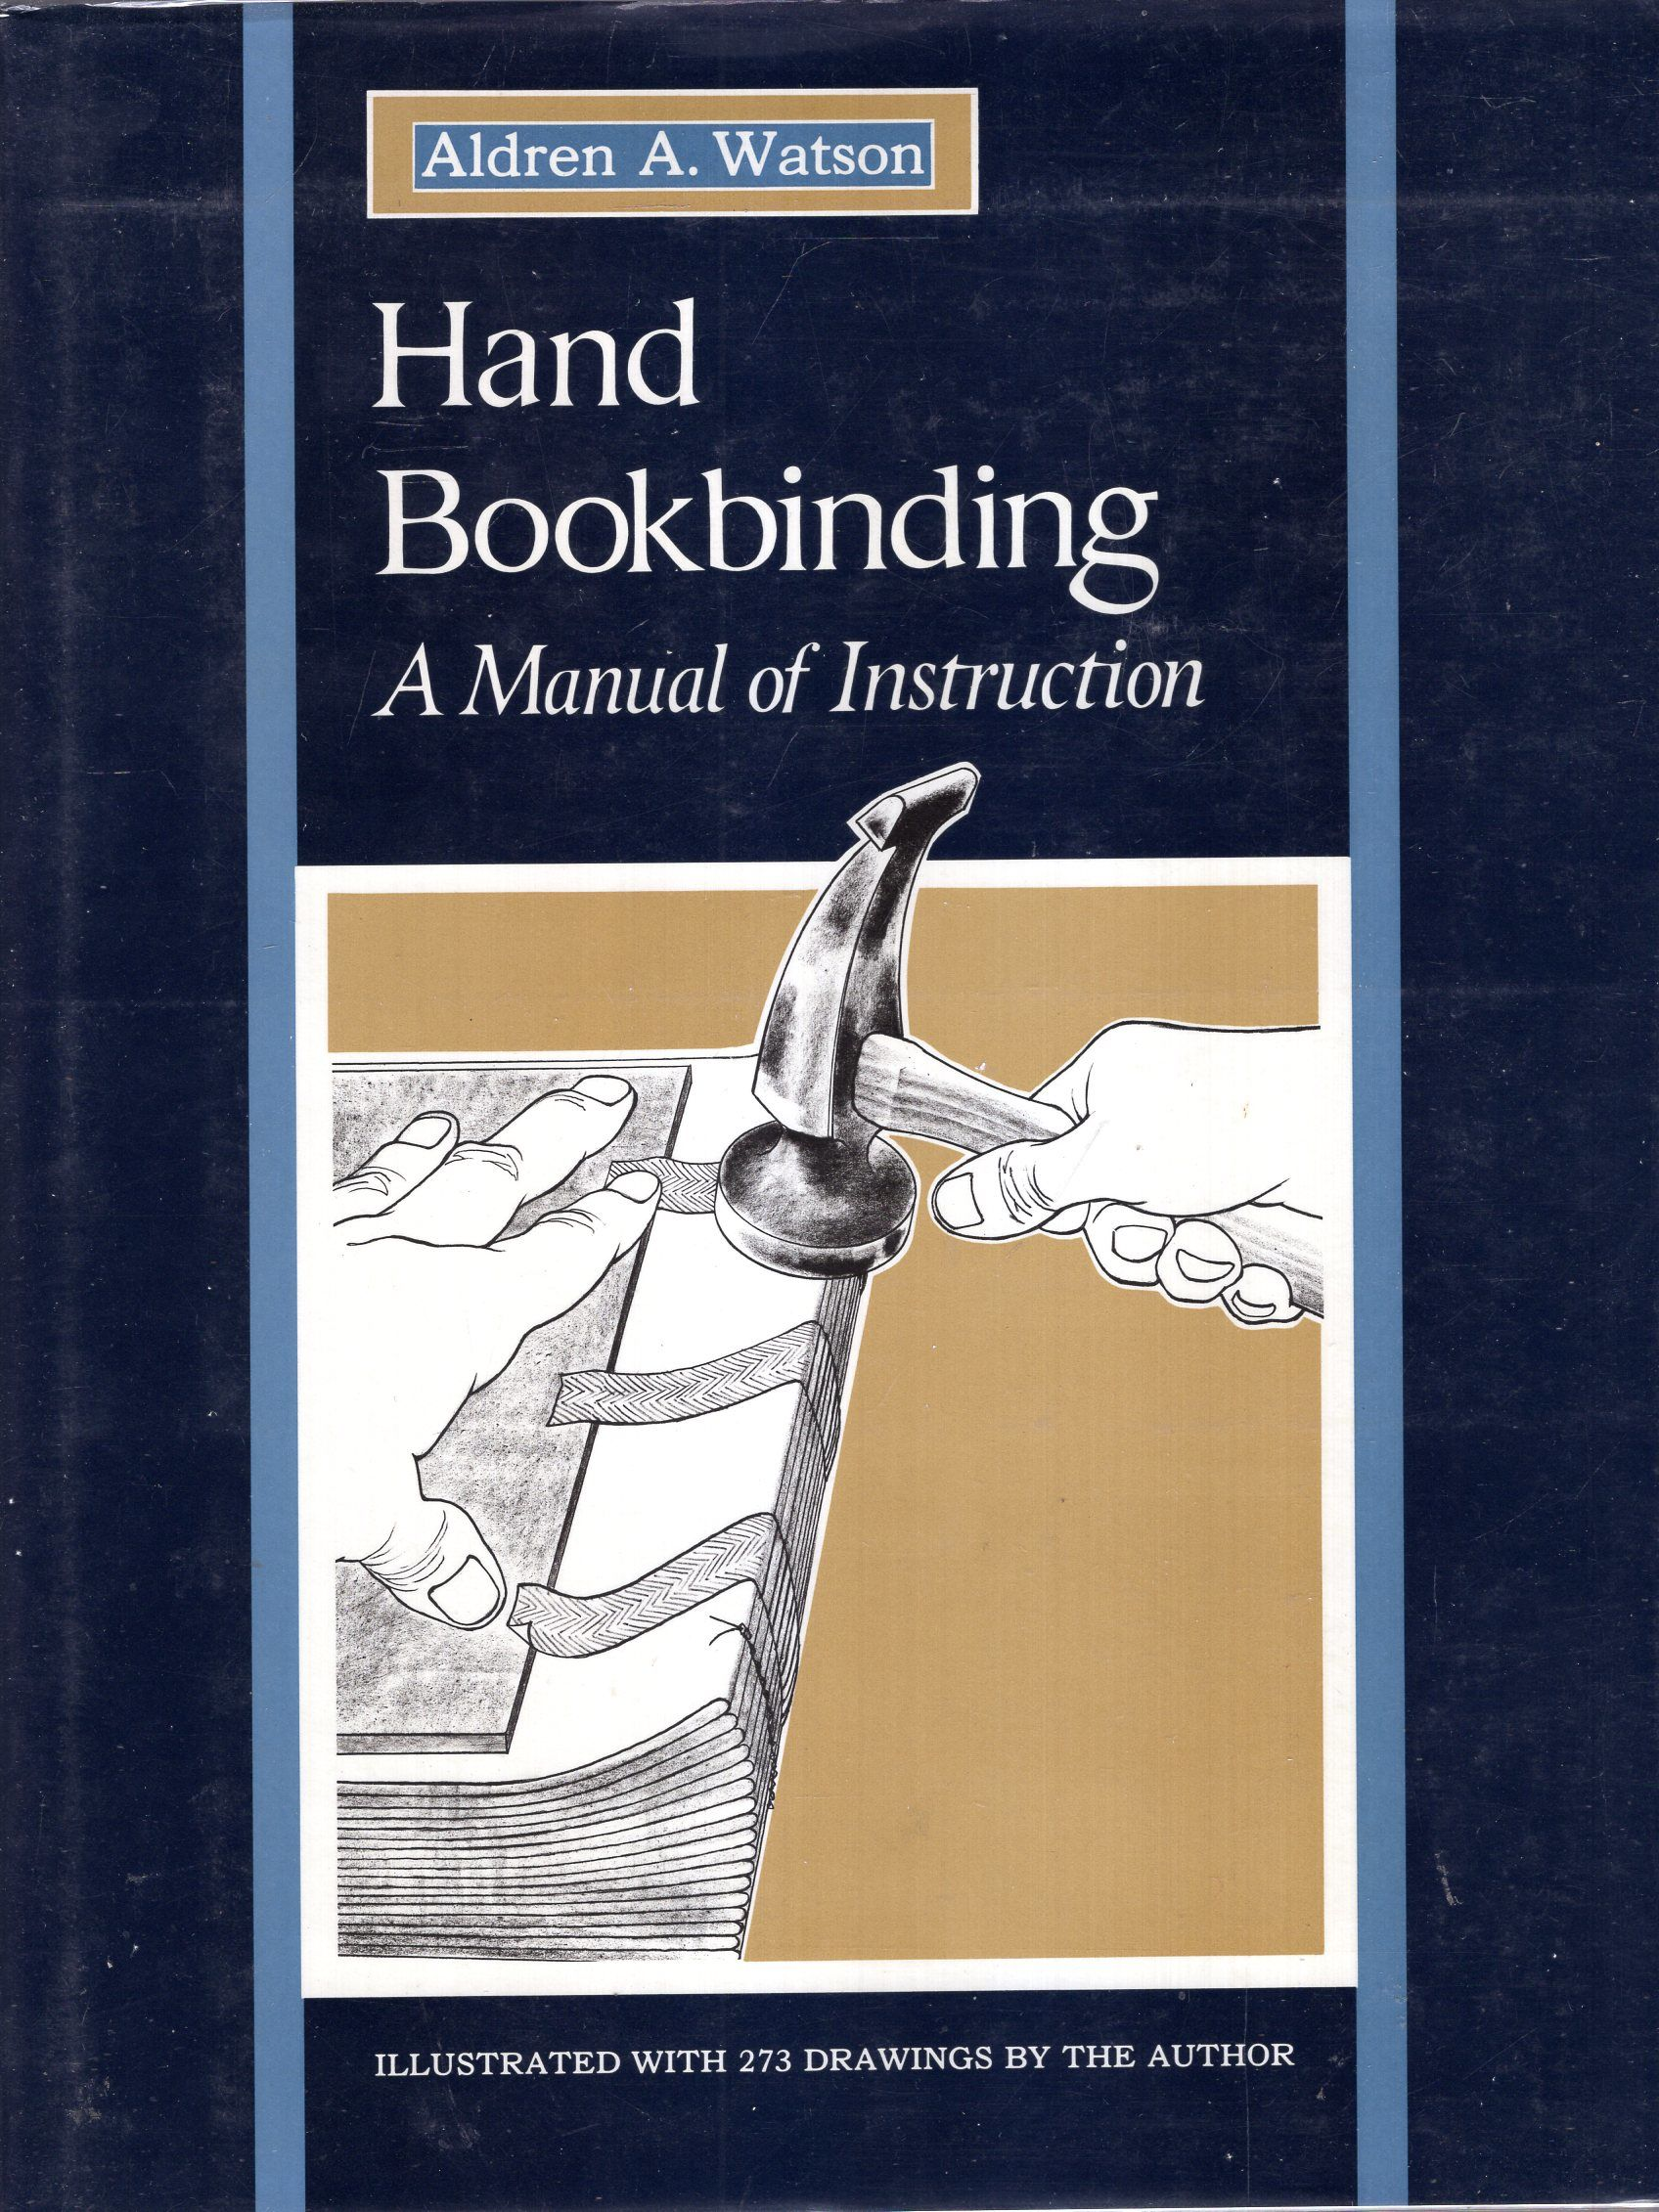 9780026244305 - Hand Bookbinding: A Manual of Instruction by Aldren A.  Watson